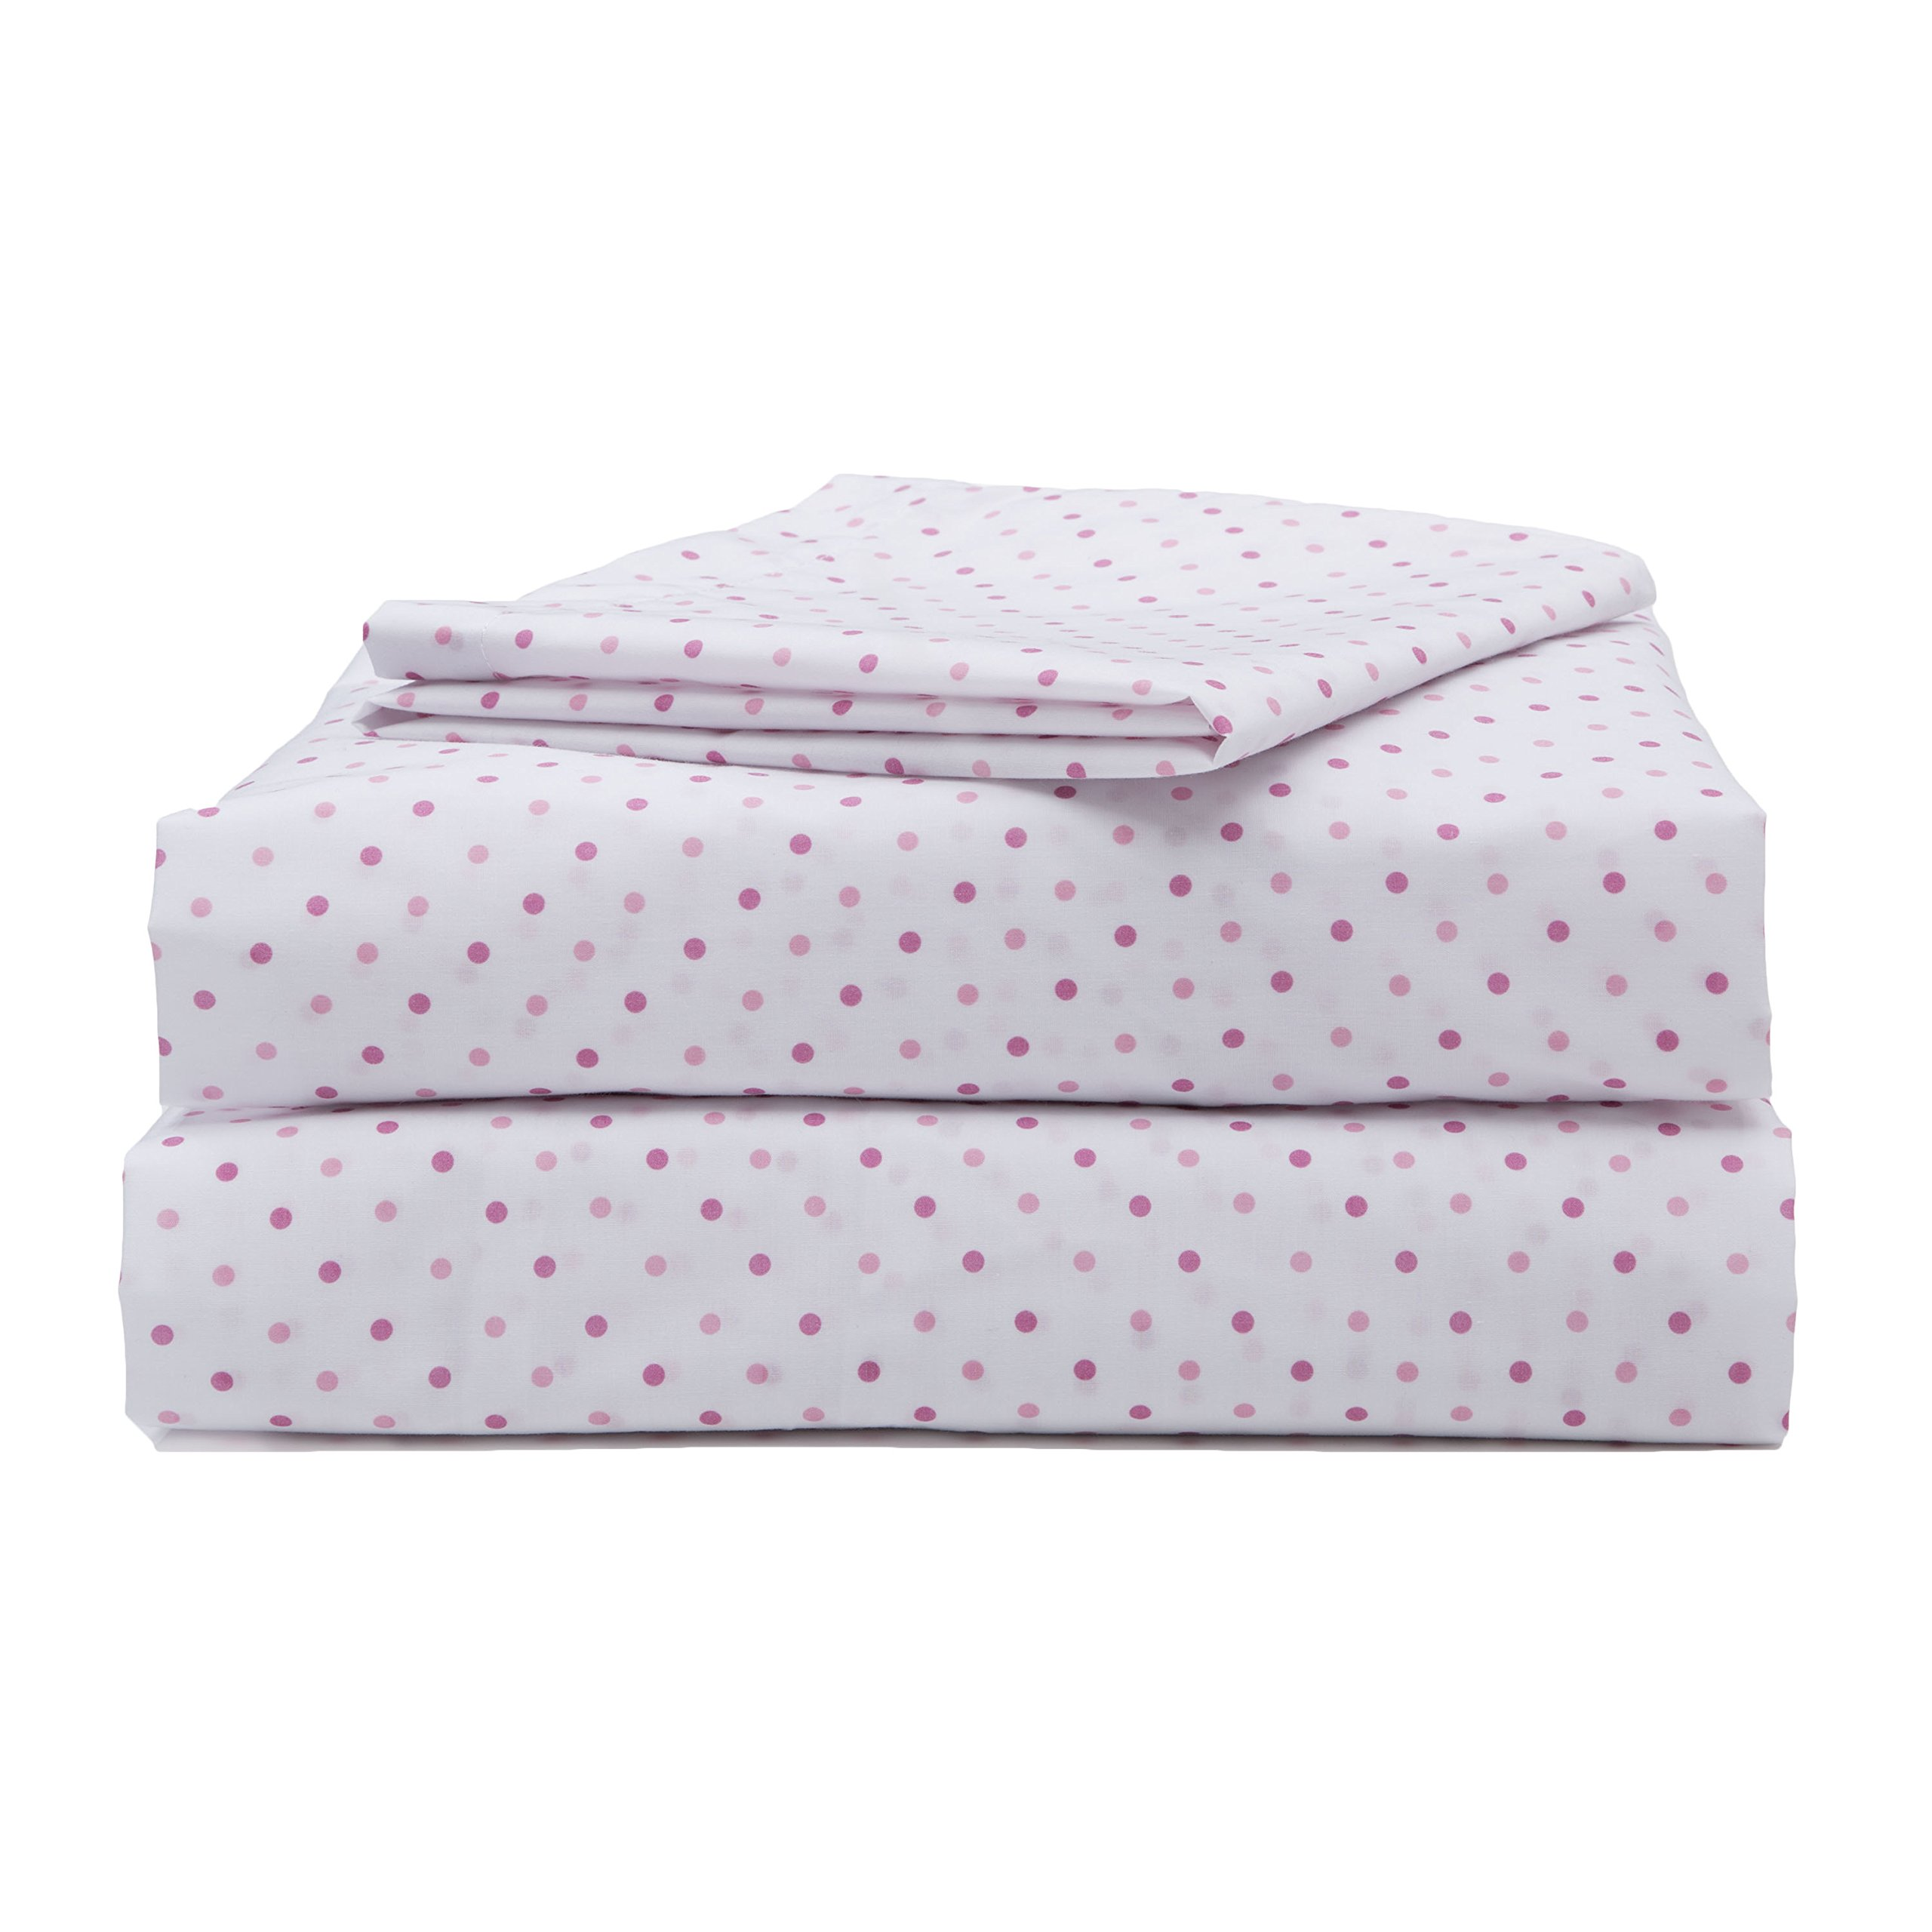 Girls Toddler Sheet Set, 3-Piece Pink Polka Dots by Delta Children